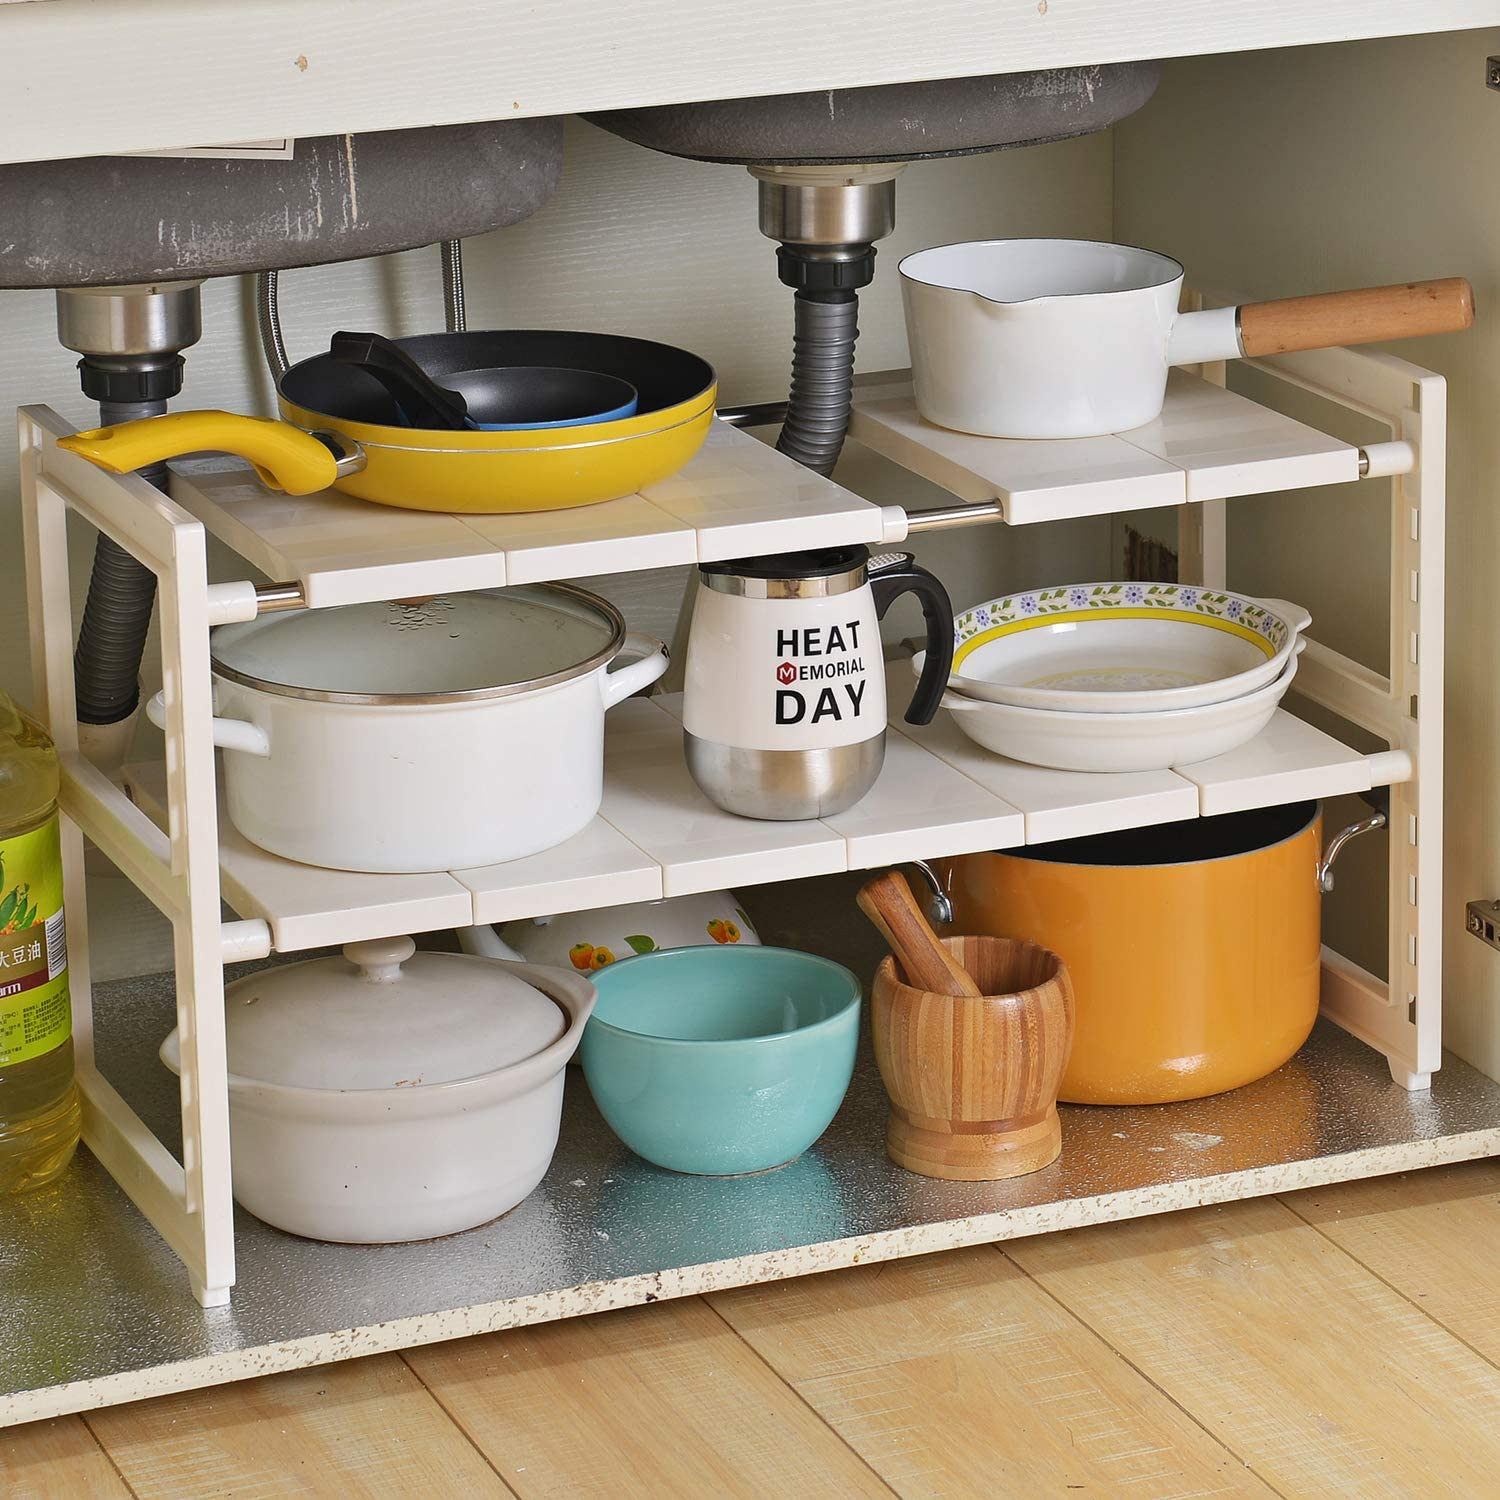 Amazon Com Obor Expandable Under Sink Organizer 2 Tier Multifunctional Storage Rack With Removable Shelves And Steel Pipes For Kitchen Bathroom And Garden,Colors That Go Well With Red Brick Fireplace